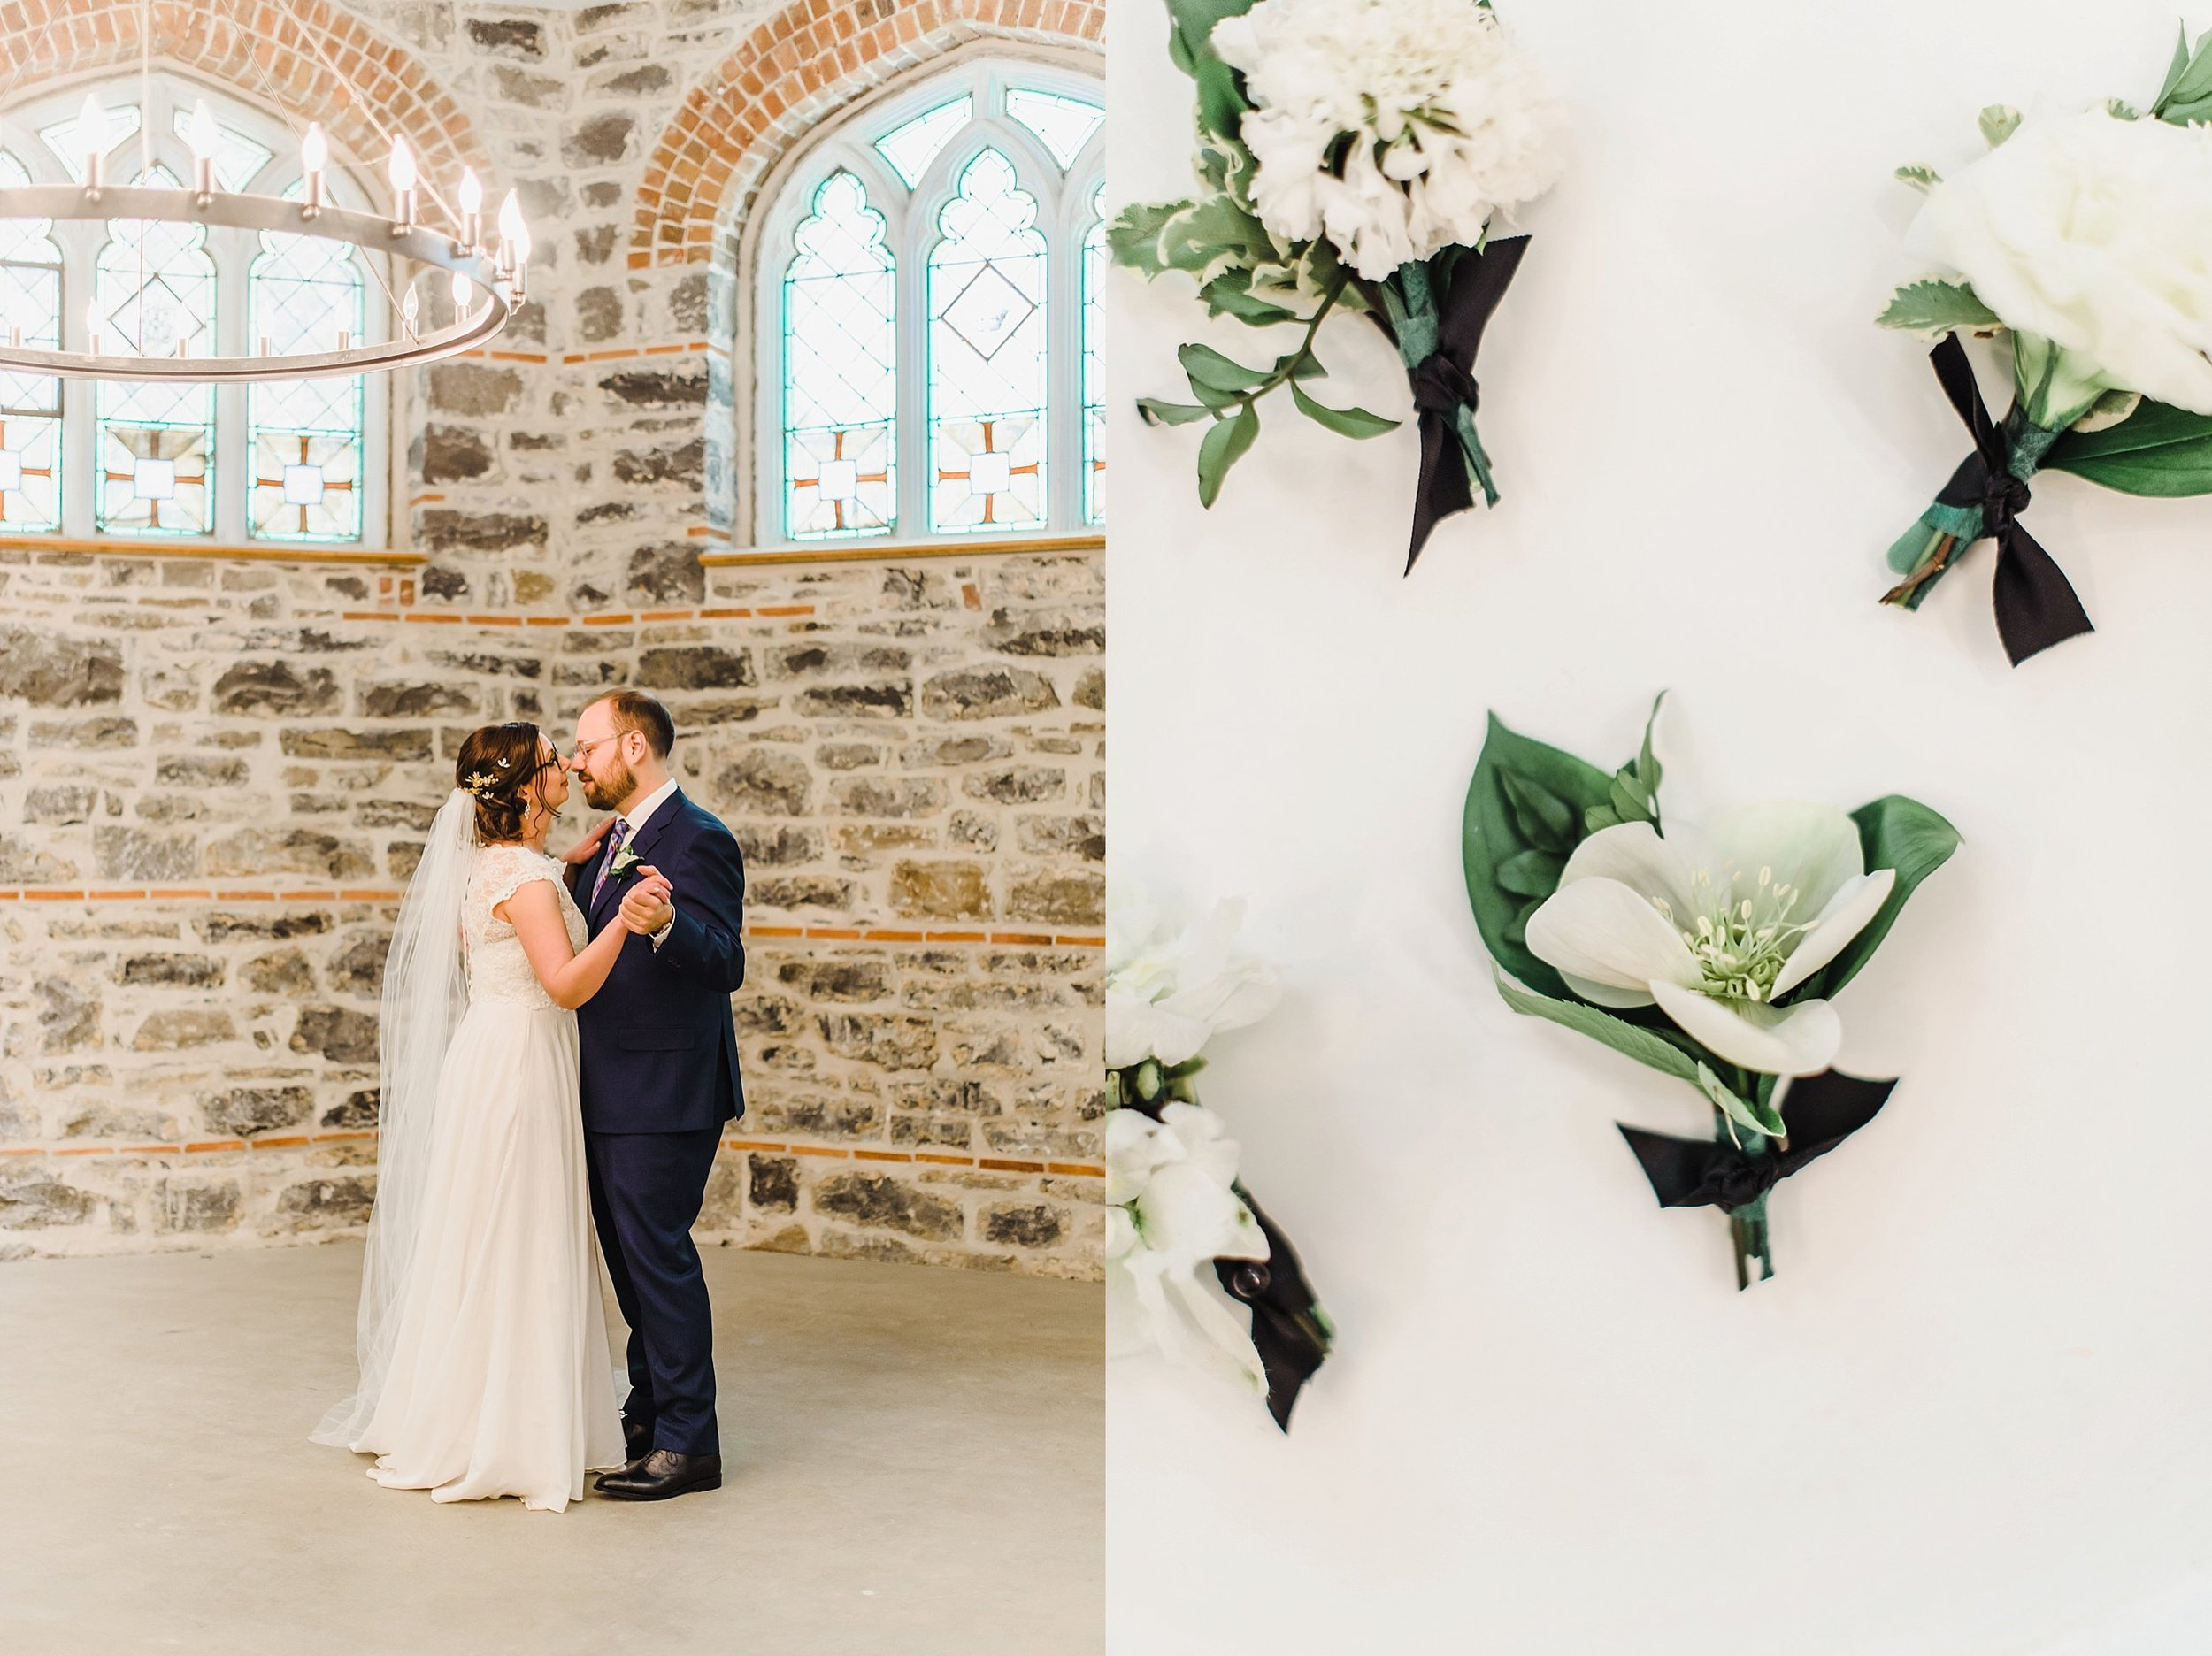 light airy indie fine art ottawa wedding photographer | Ali and Batoul Photography_0047.jpg